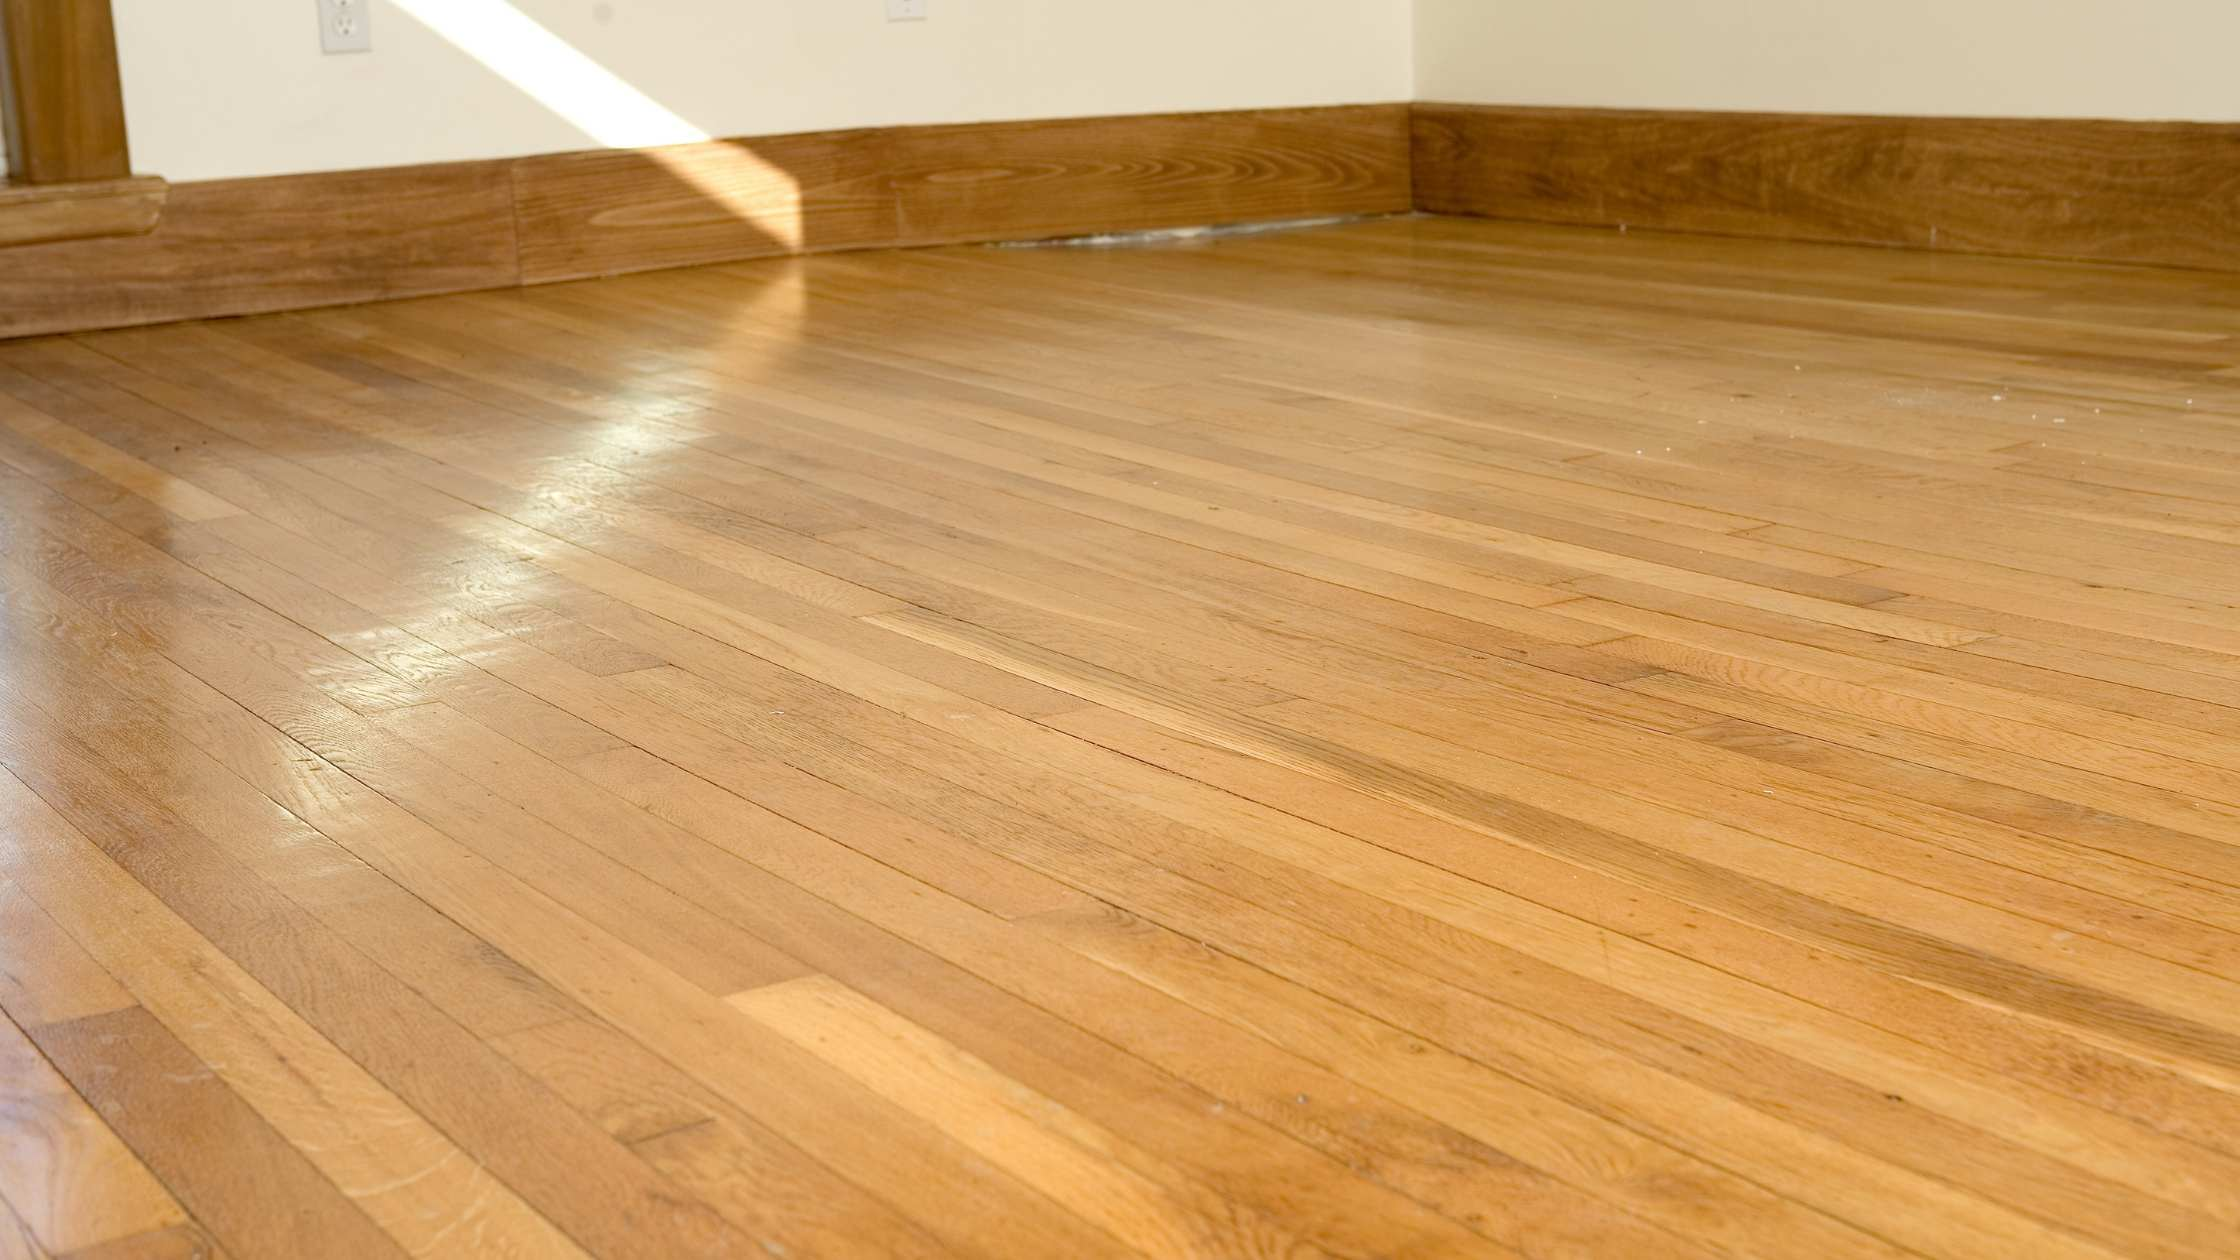 What are The Best Types of Hardwood Flooring?